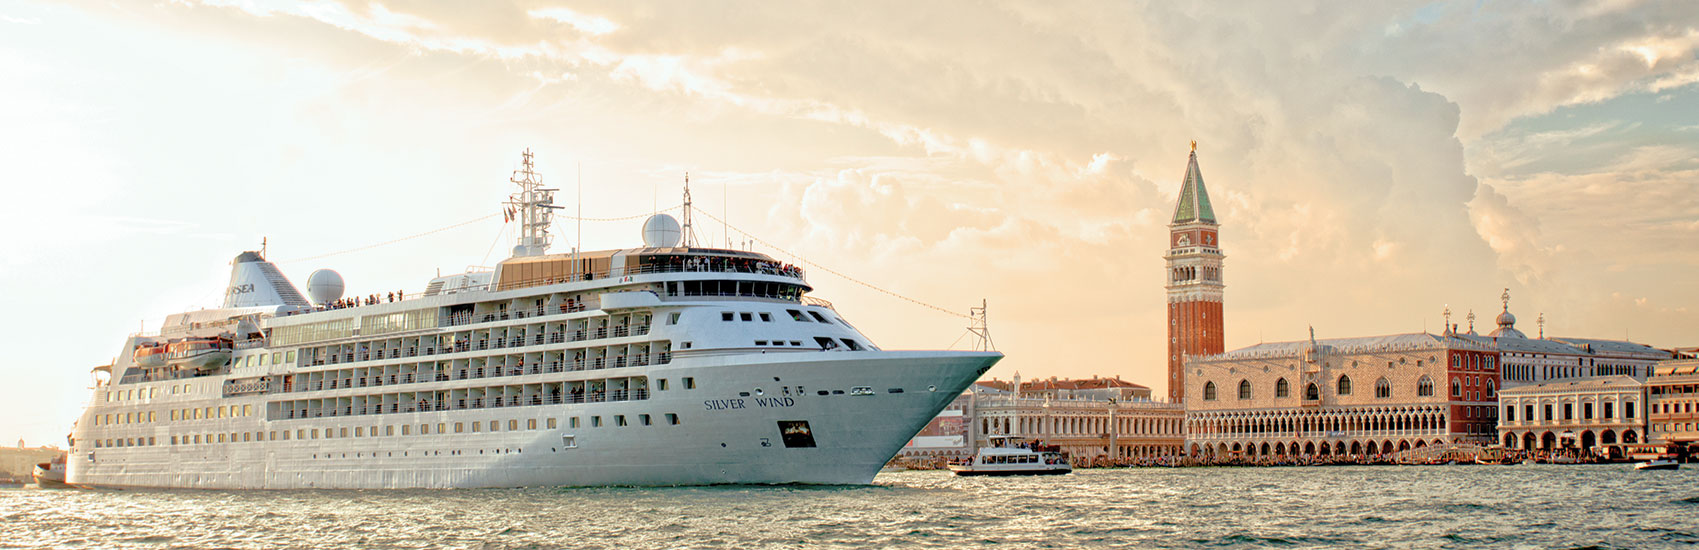 Early Booking Bonus with Silversea